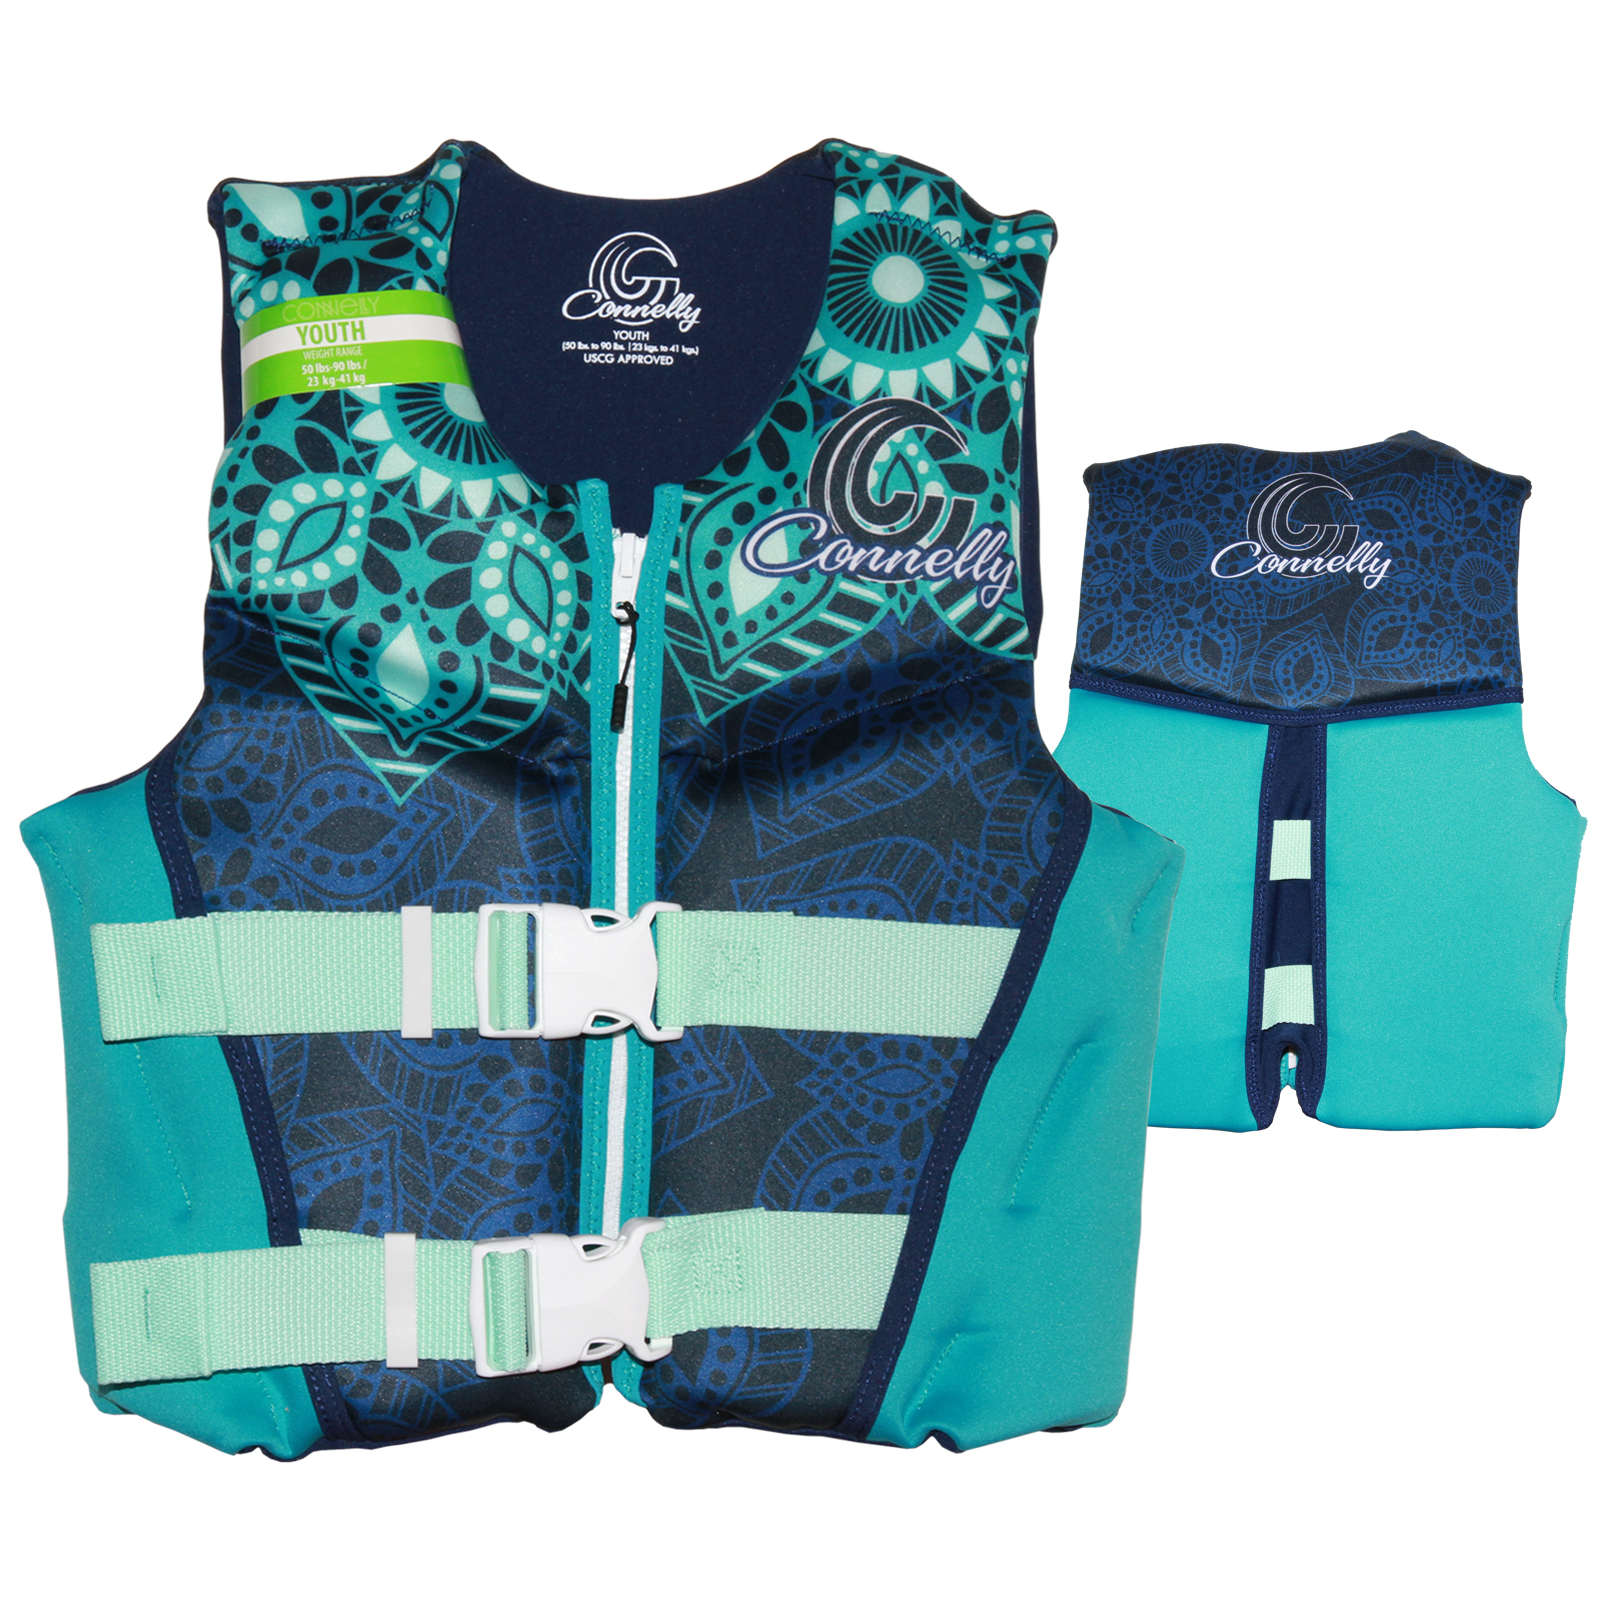 GIRLS YOUTH NEO VEST 22-40KG CONNELLY 2018